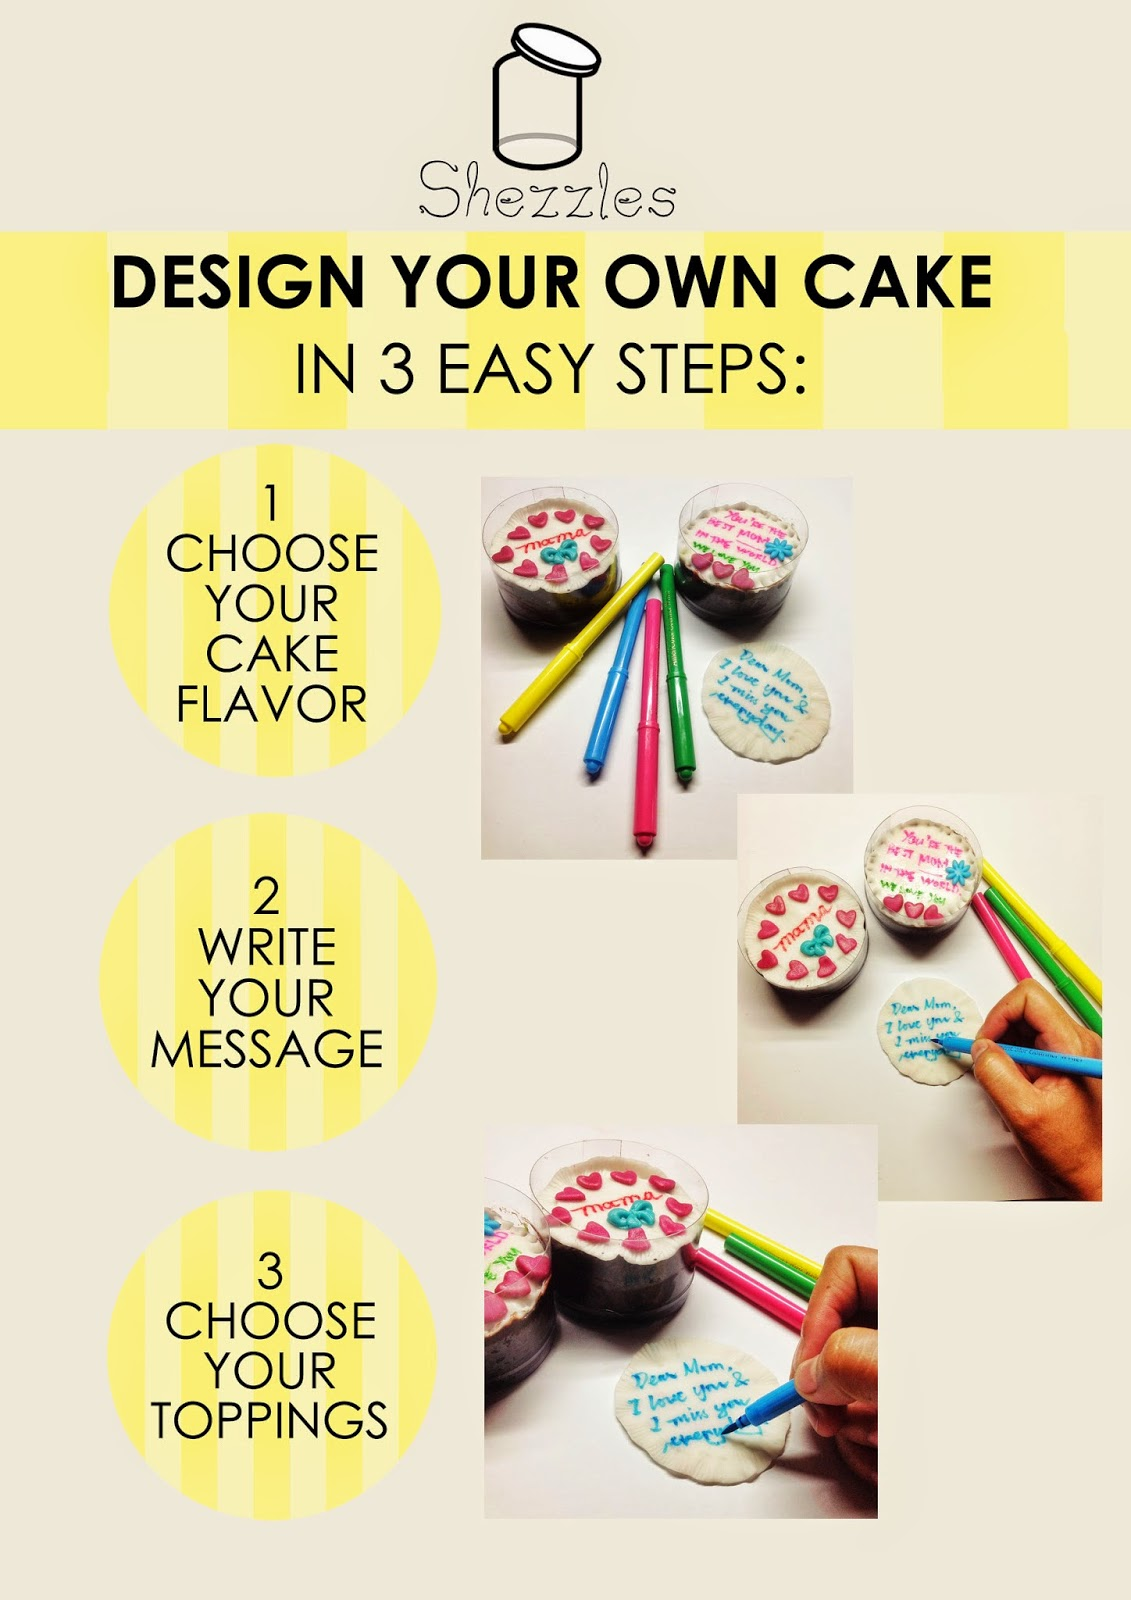 Cake Design Your Own : Shezzles Dessert in a jar: Design Your Own Cake This ...